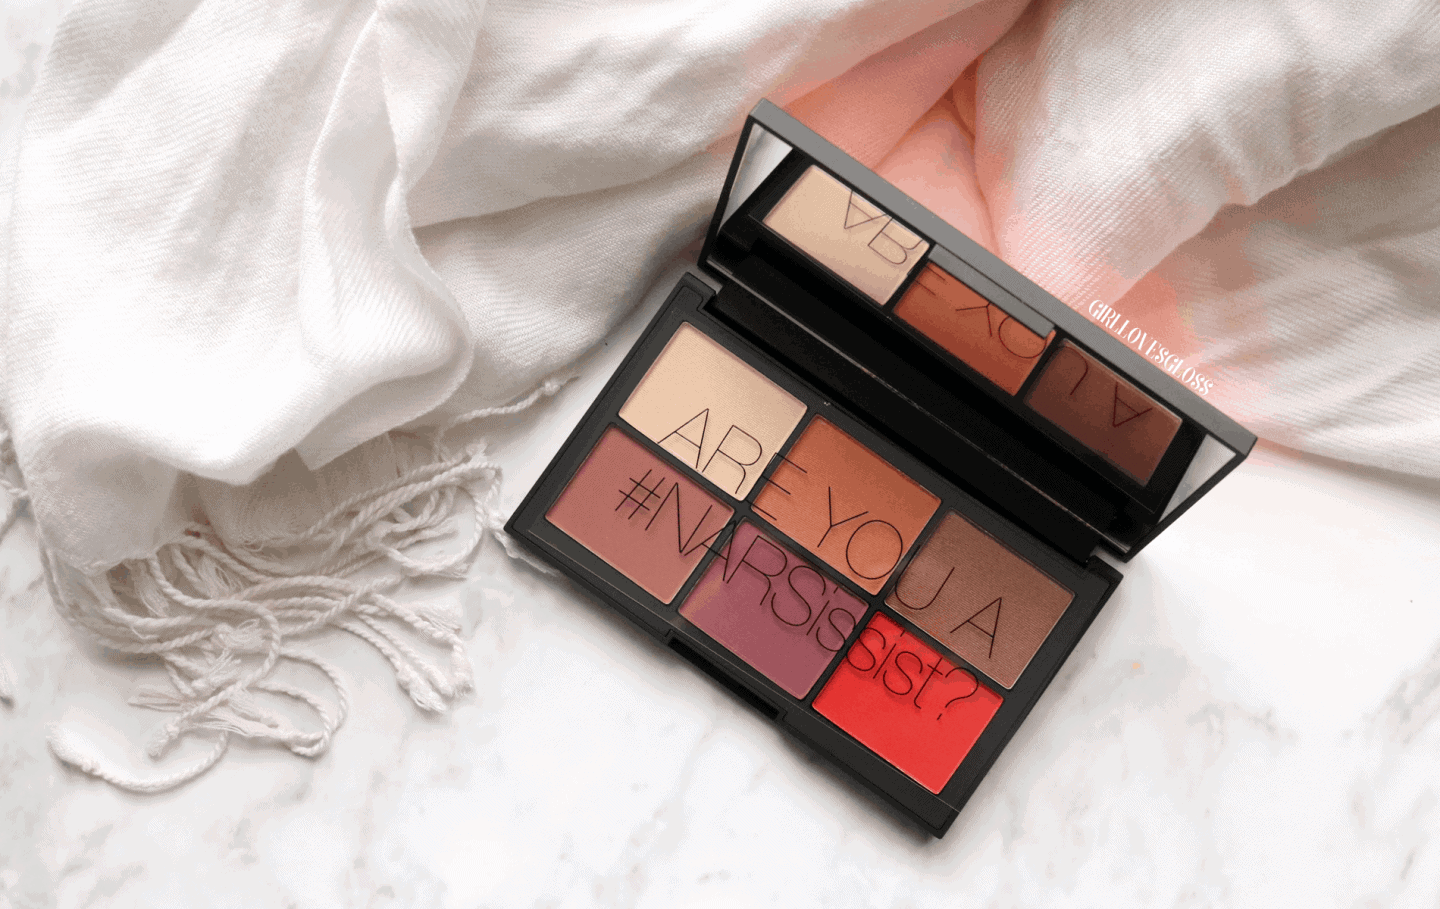 For the Blush Lovers: NARS Unfiltered Blush Palette